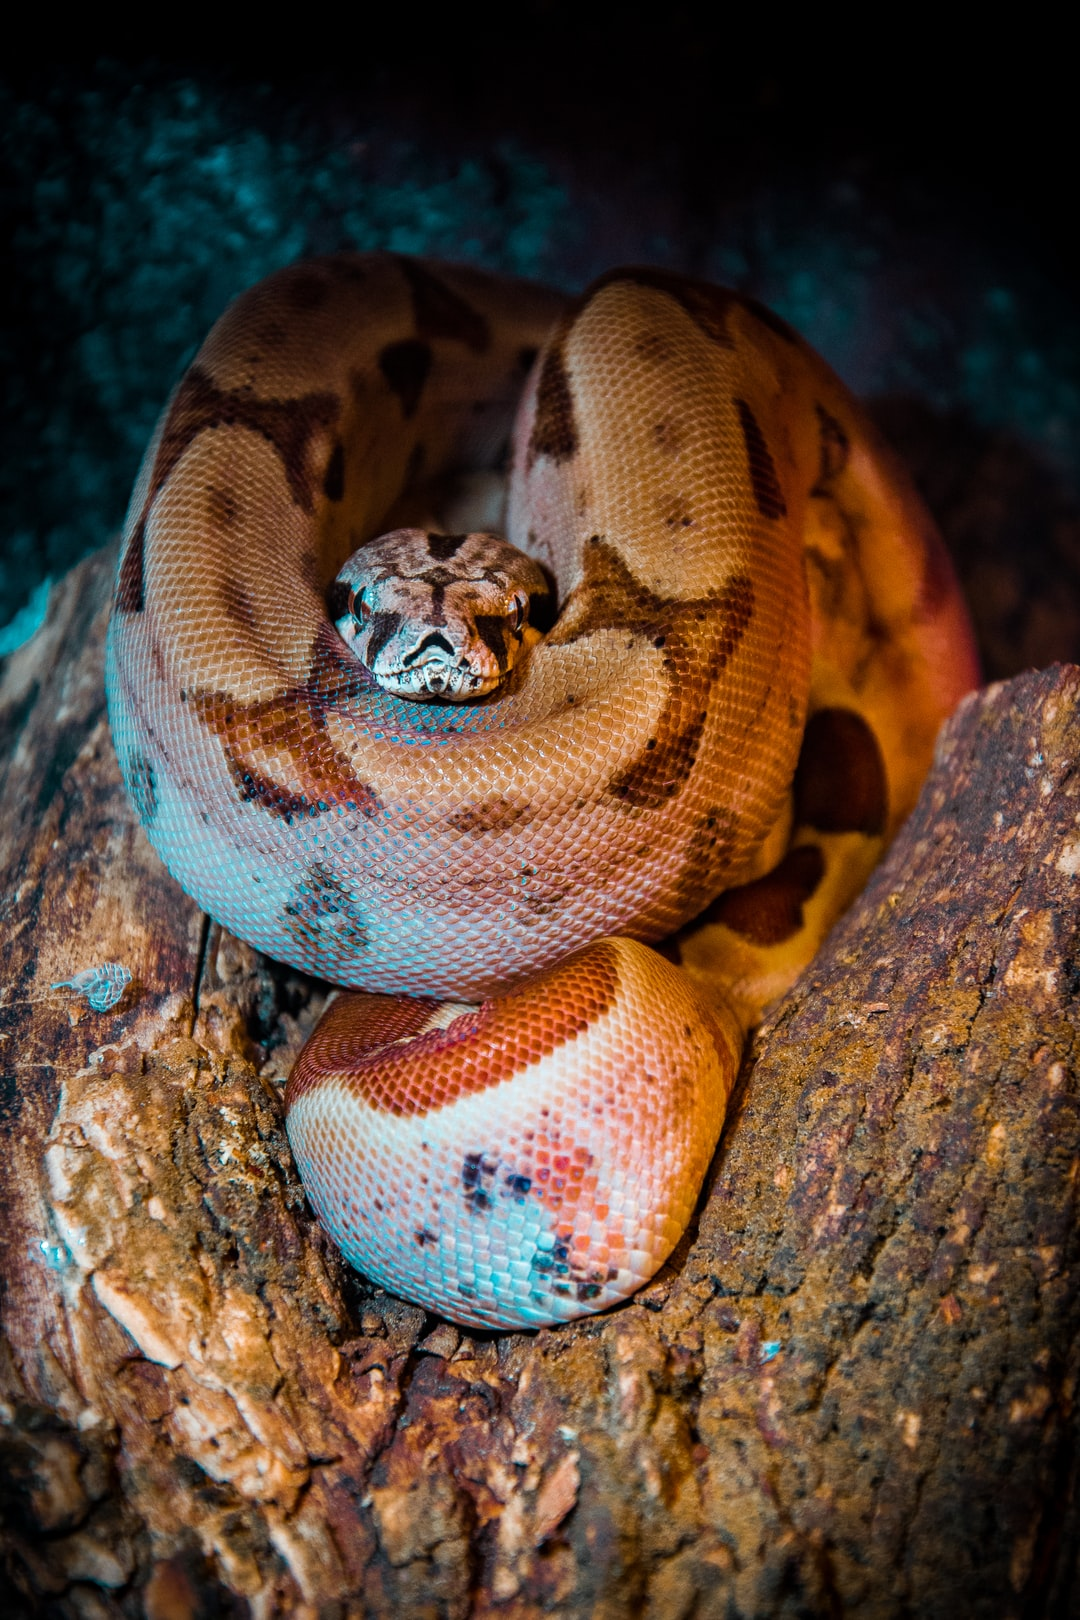 Young Boa Constrictor chilling on the tree at night